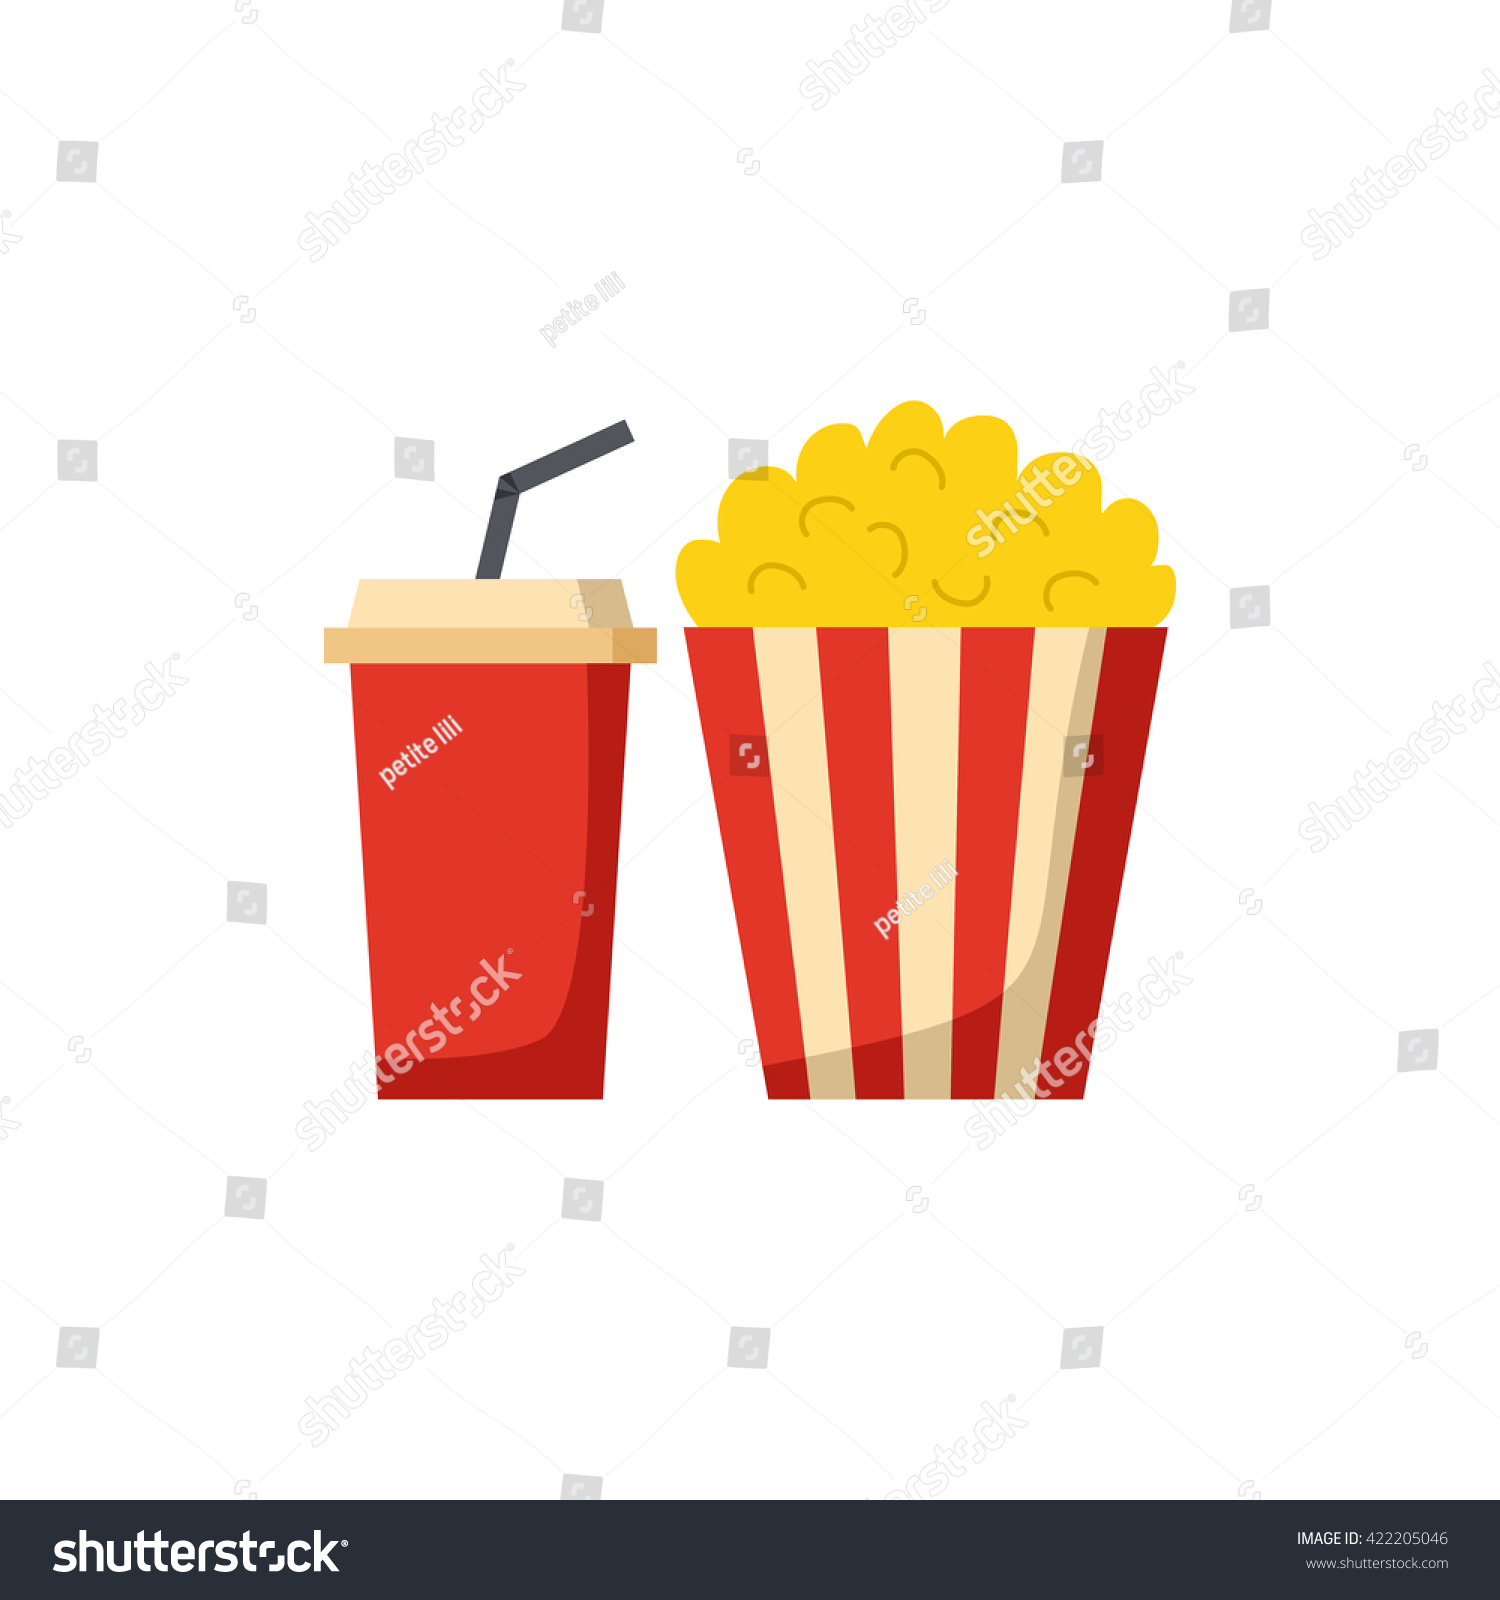 Vector Illustration Cartoon Movie Popcorn Soda Stock Vector Royalty Free 422205046